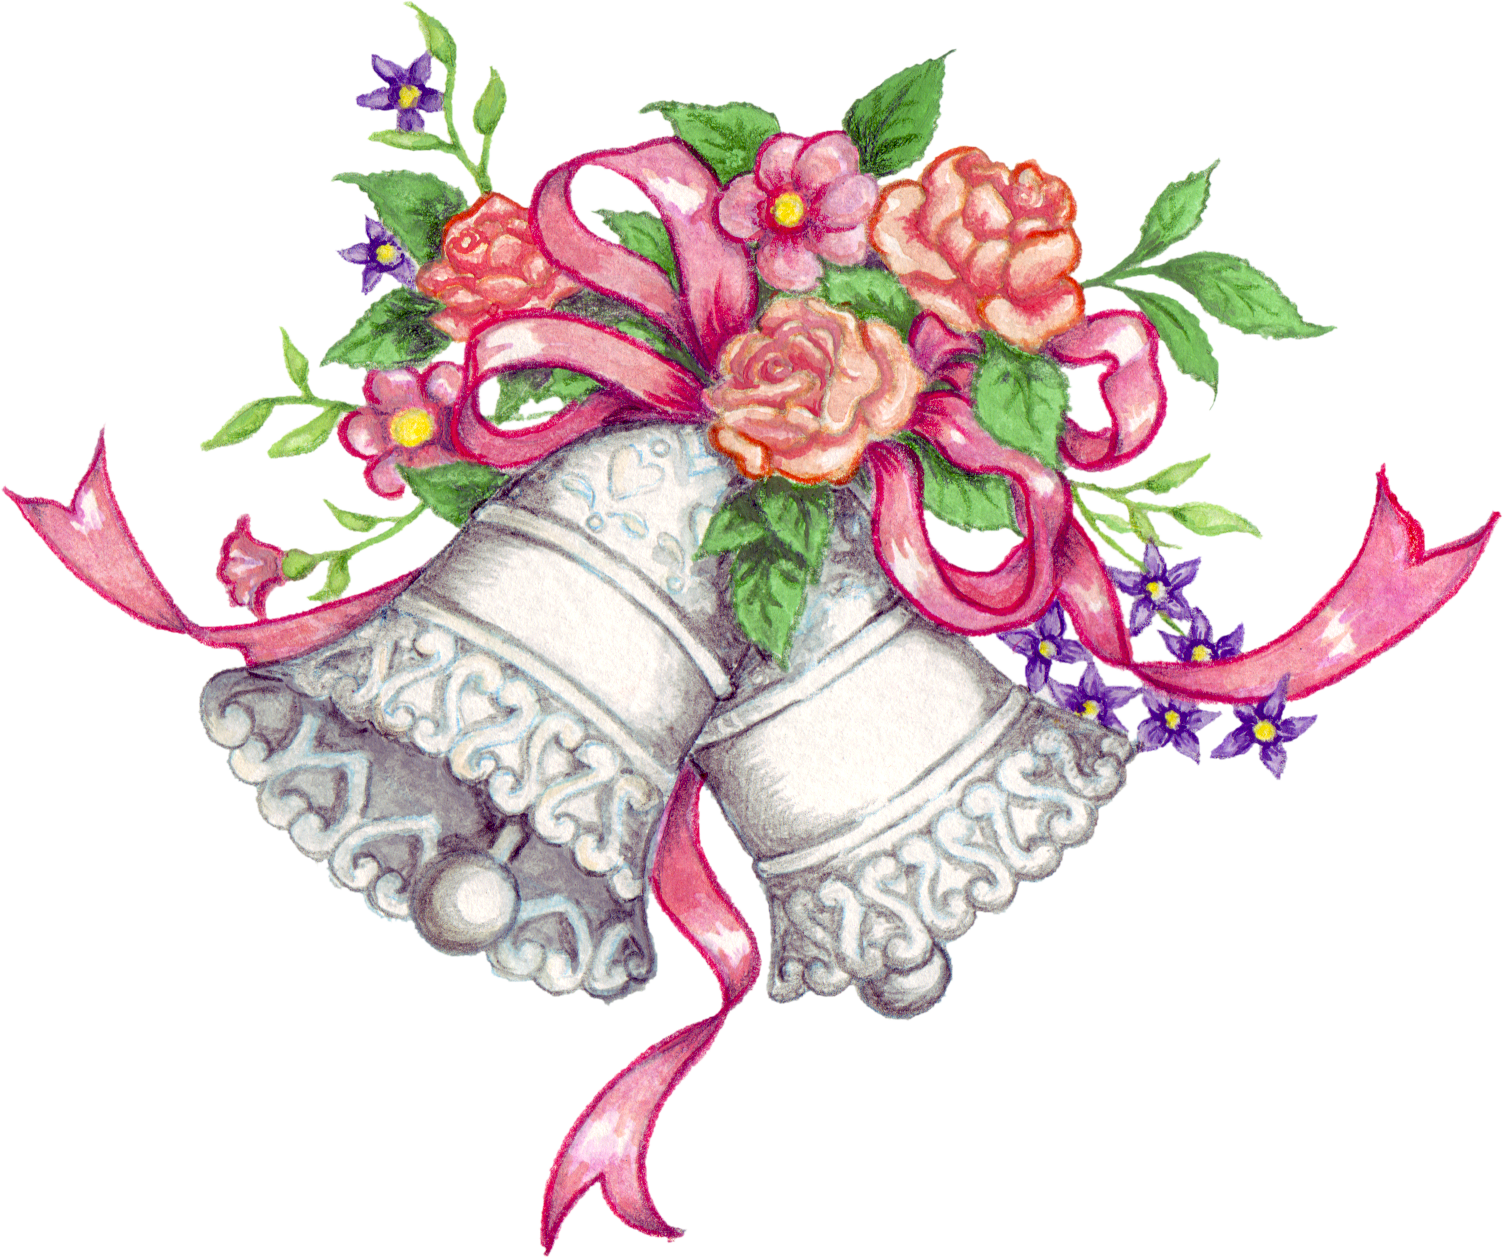 Silver bells flower clipart clipart freeuse Free Transparent PNG files and Paint Shop Pro Tubes | Pinterest ... clipart freeuse